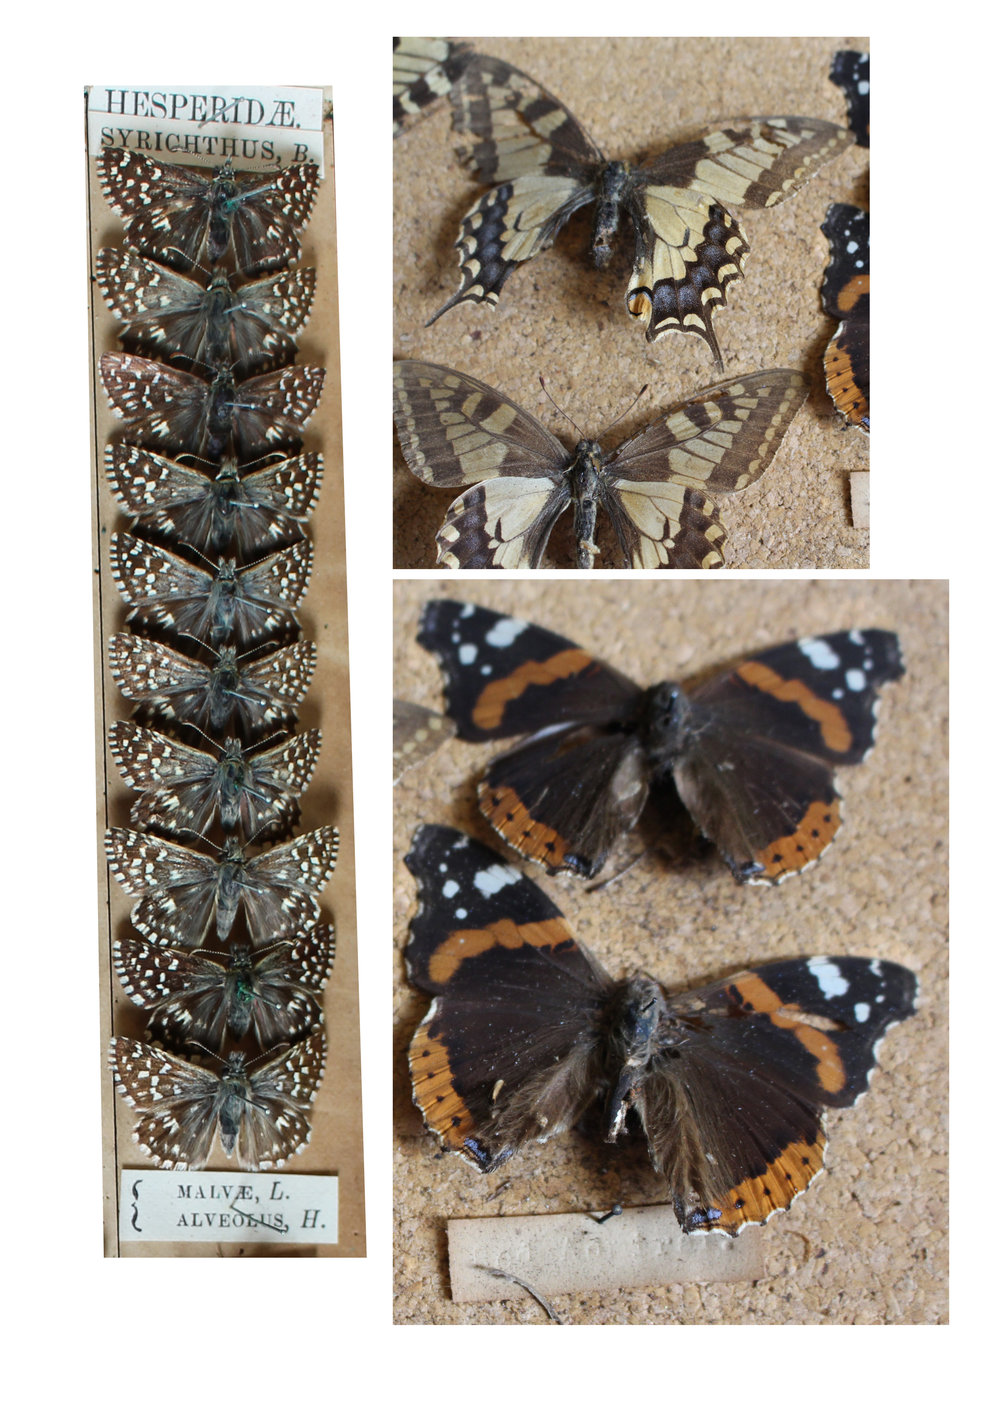 These red admirals have seen better days!